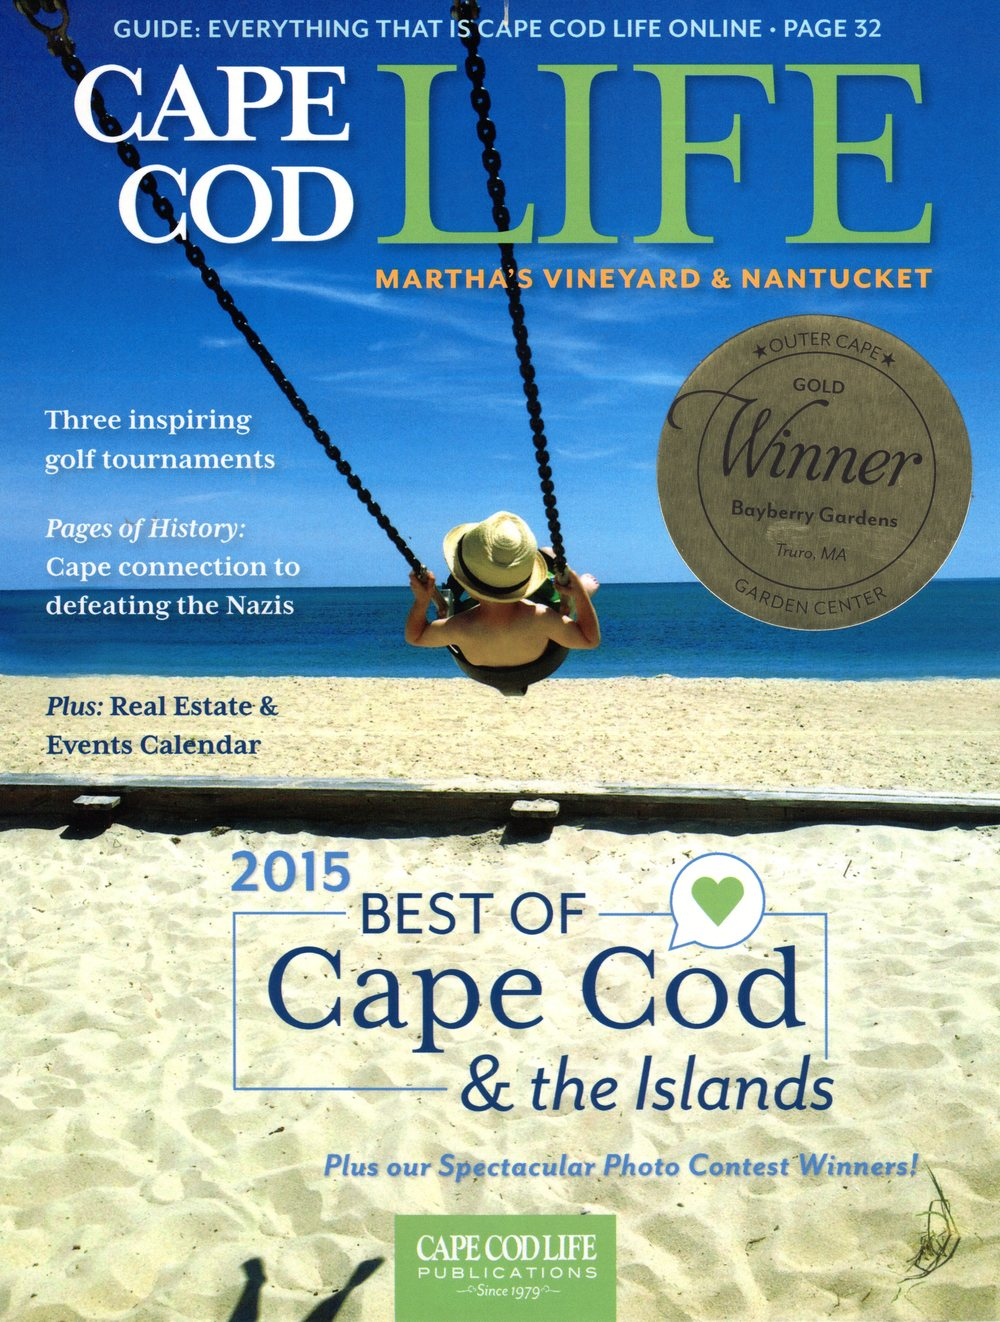 Cape Cod Life Best of 2015